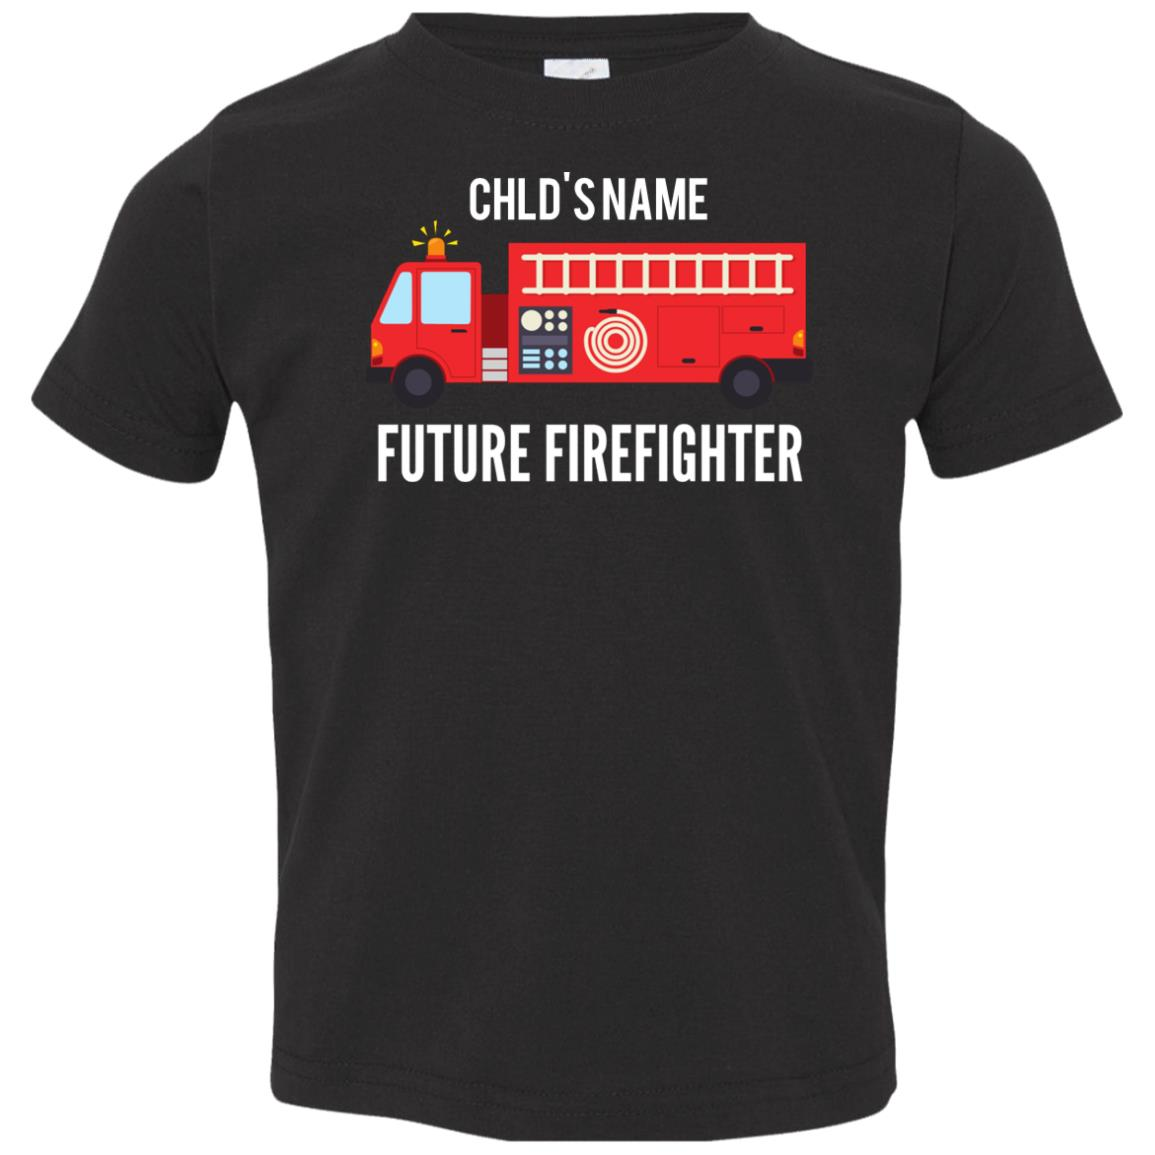 Personalized Future Firefighter Toddler Jersey T-Shirt by Rabbit Skins